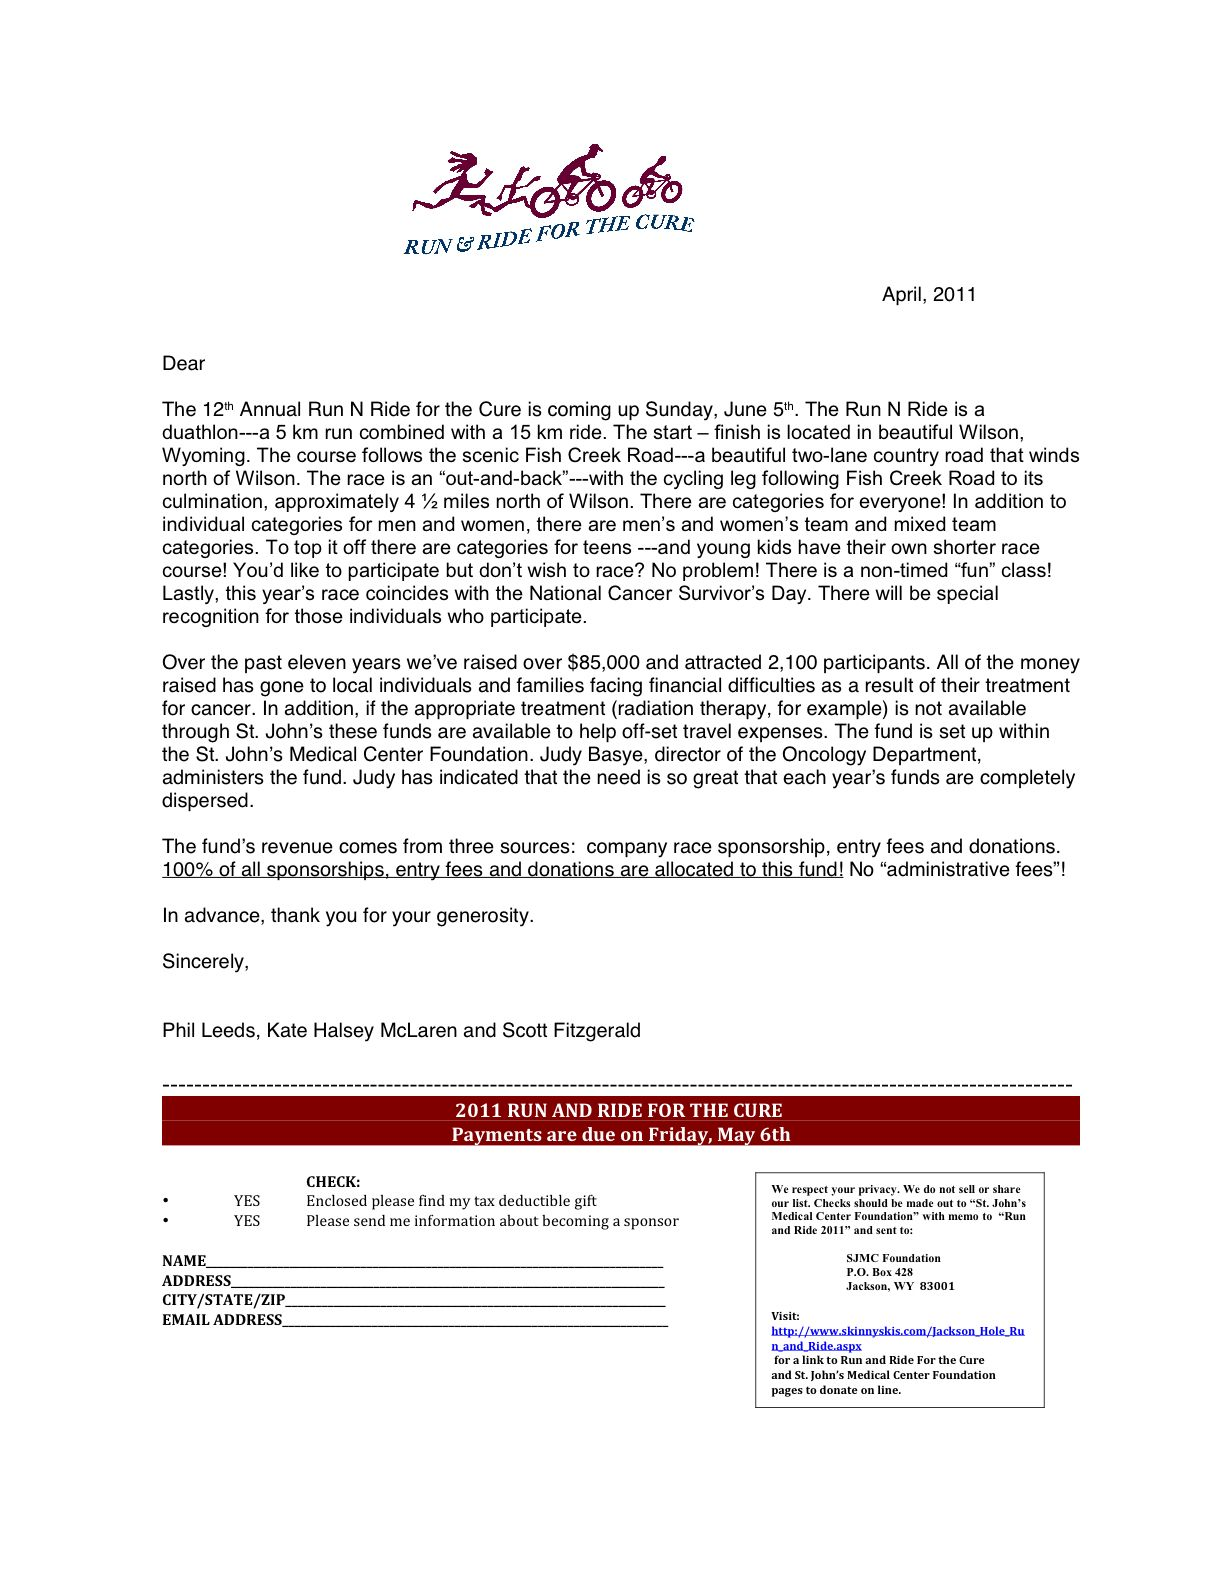 Event Sponsorship Letter Example Image Result For Sponsorship Application Template  Sissy's Angels .